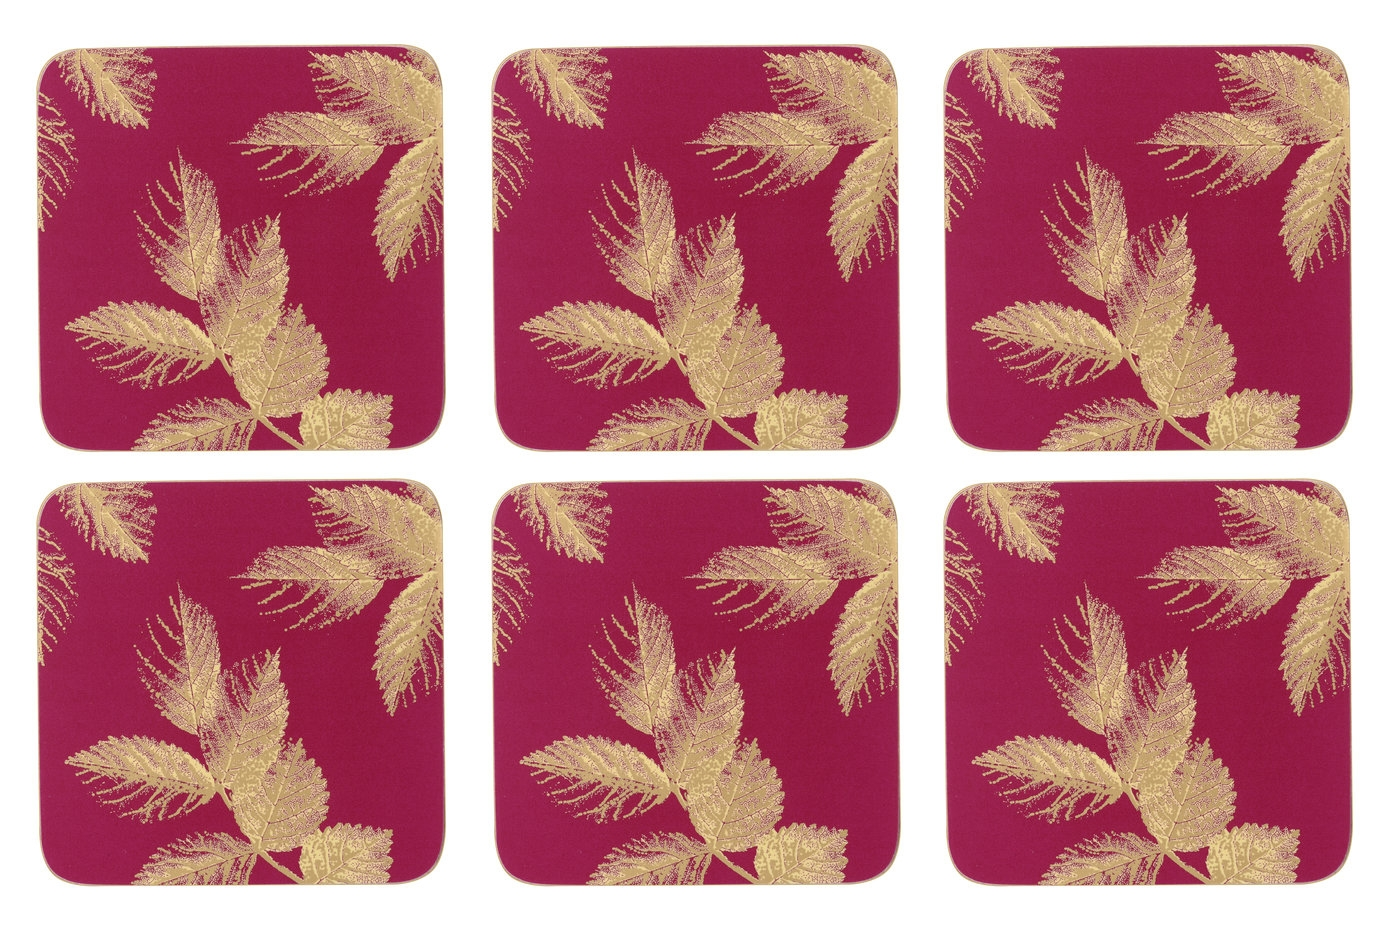 Sara Miller London for Pimpernel Etched Leaves Coasters Set of 6 Pink  image number 0